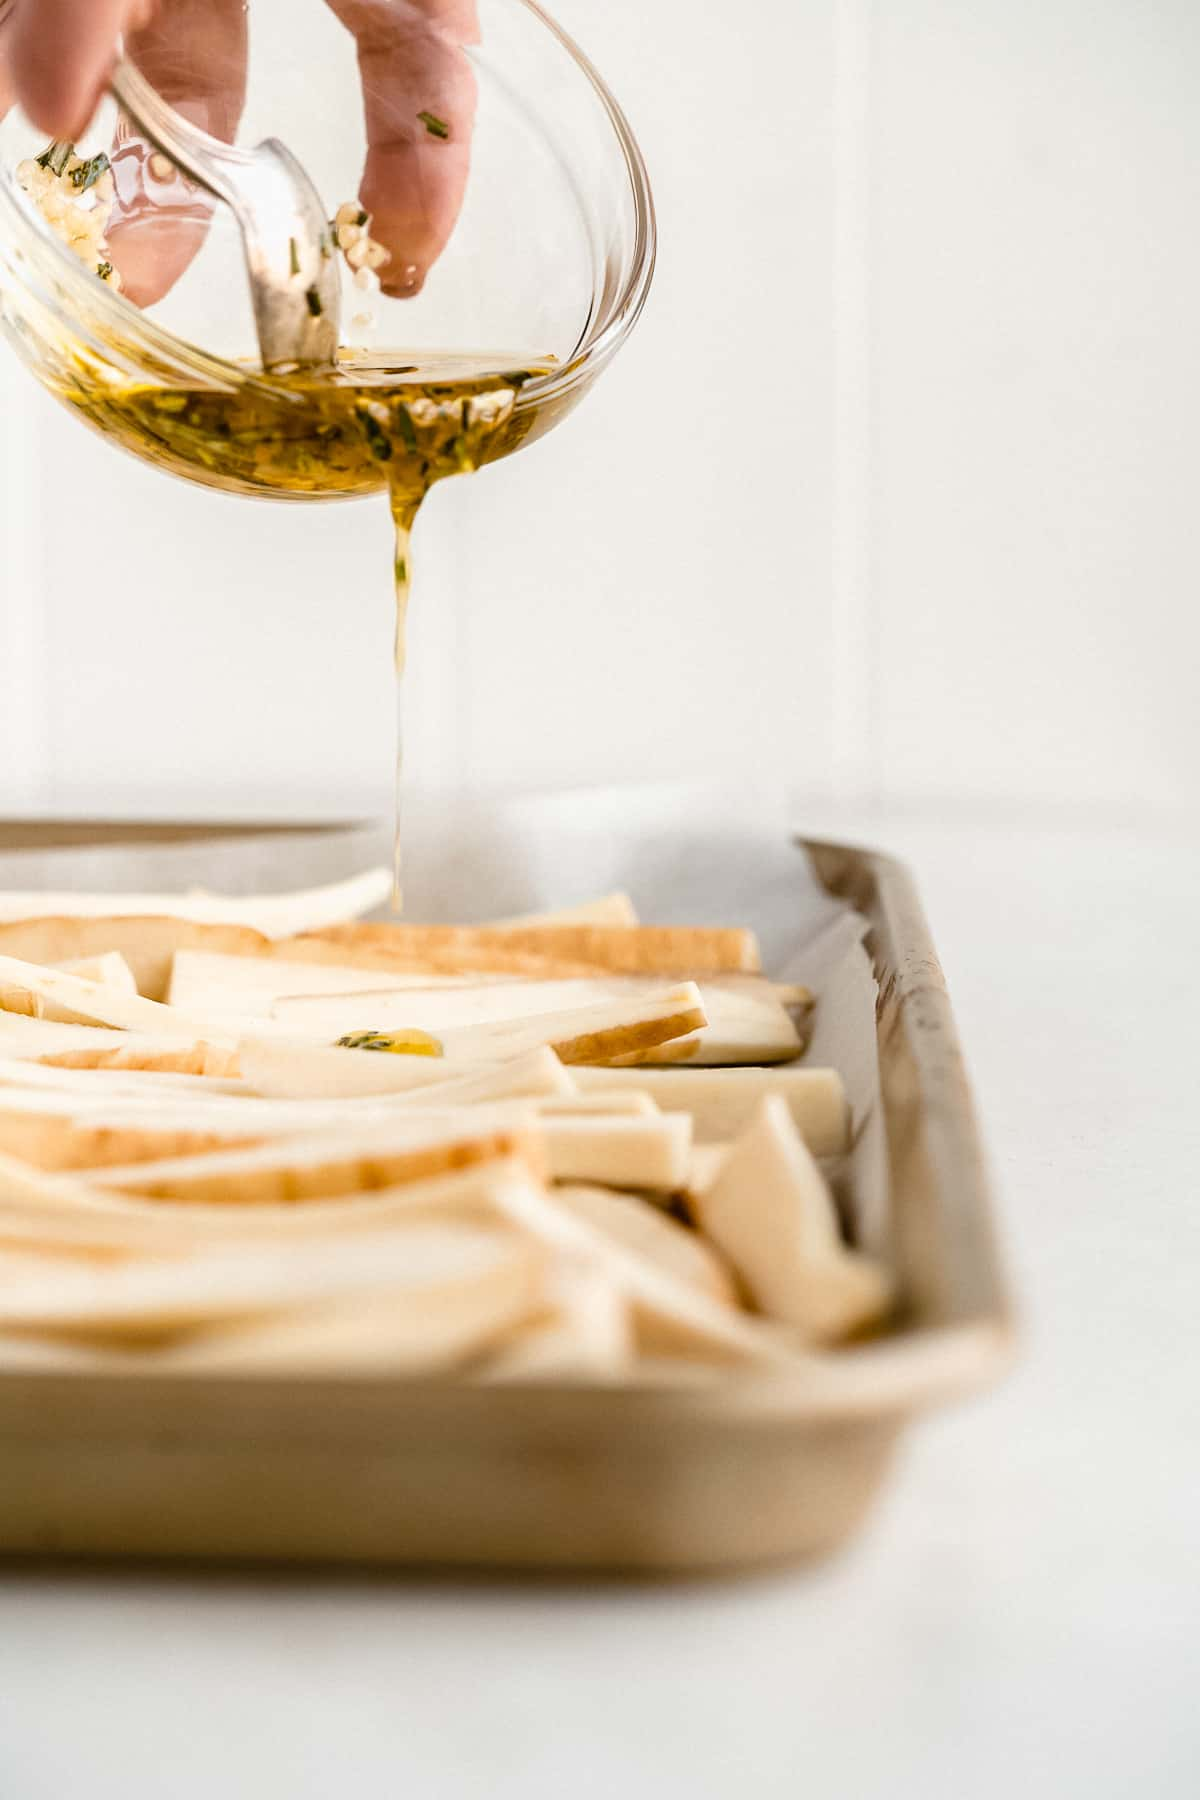 Image of sliced parsnips arranged on parchment paper on a baking sheet.  A hand overhead is holding a small bowl of olive oil and spices and is drizzling the mixture over the parsnip slices below.